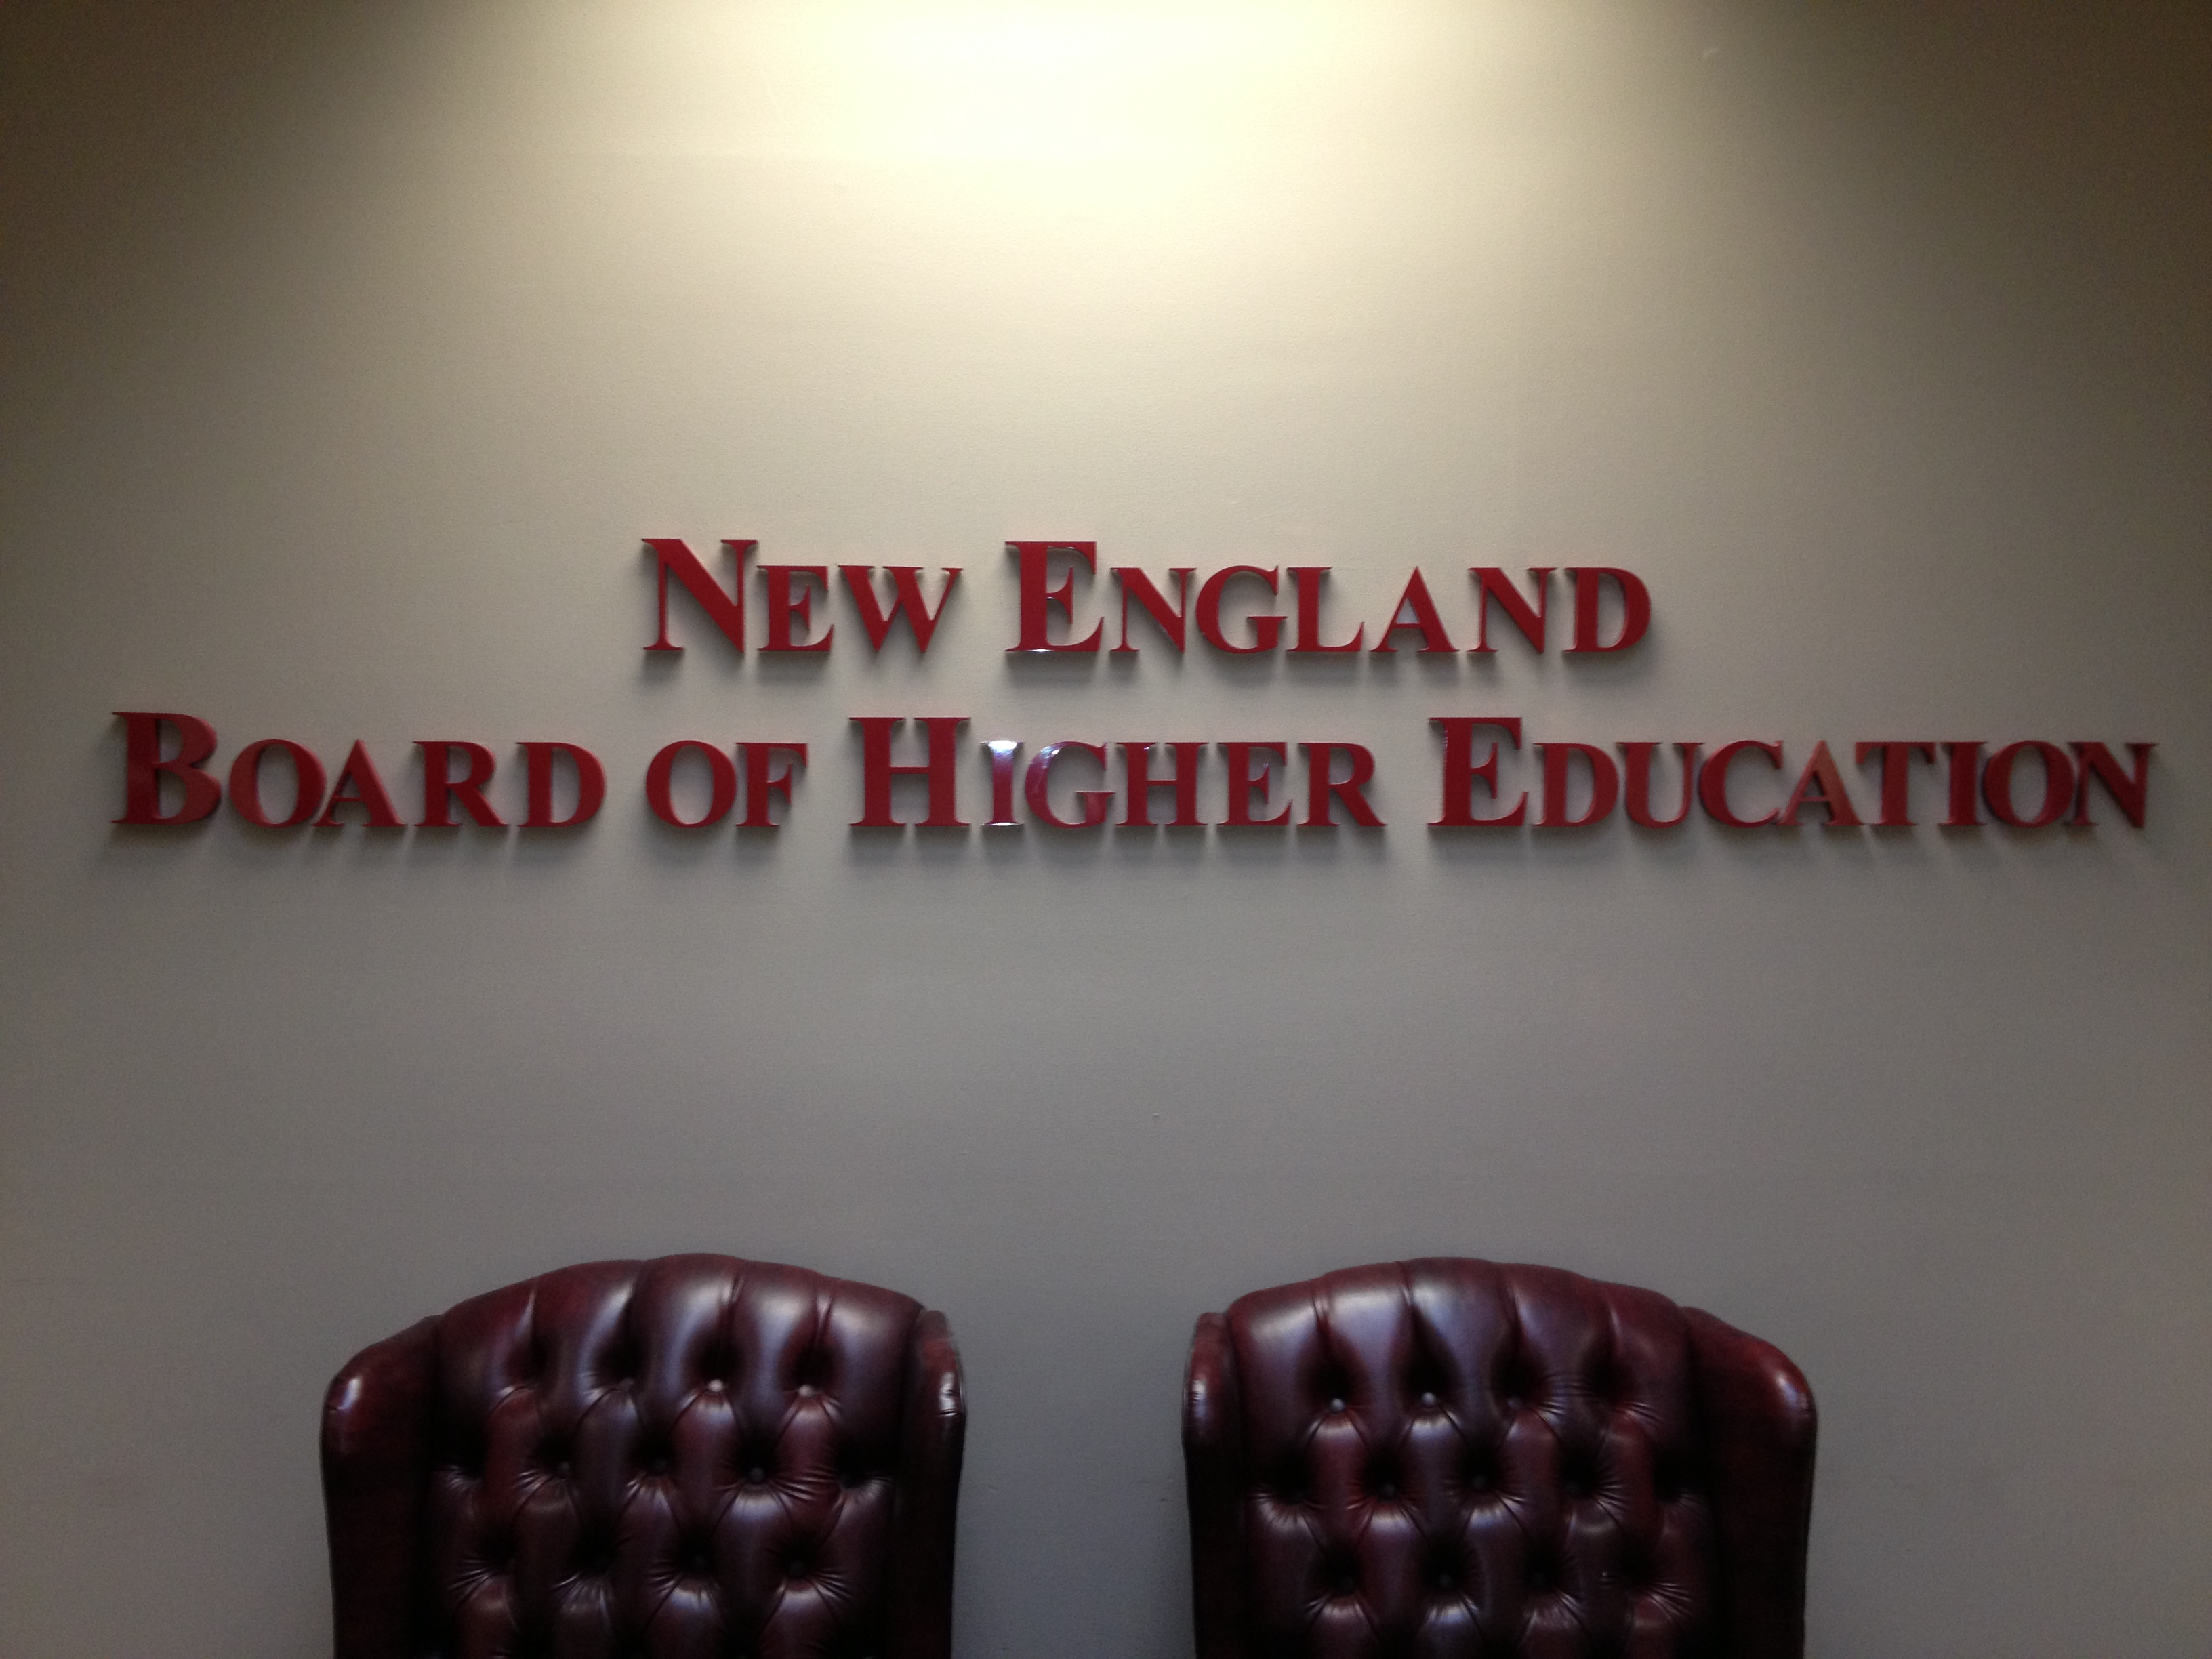 NE Board of Higher Education-Boston